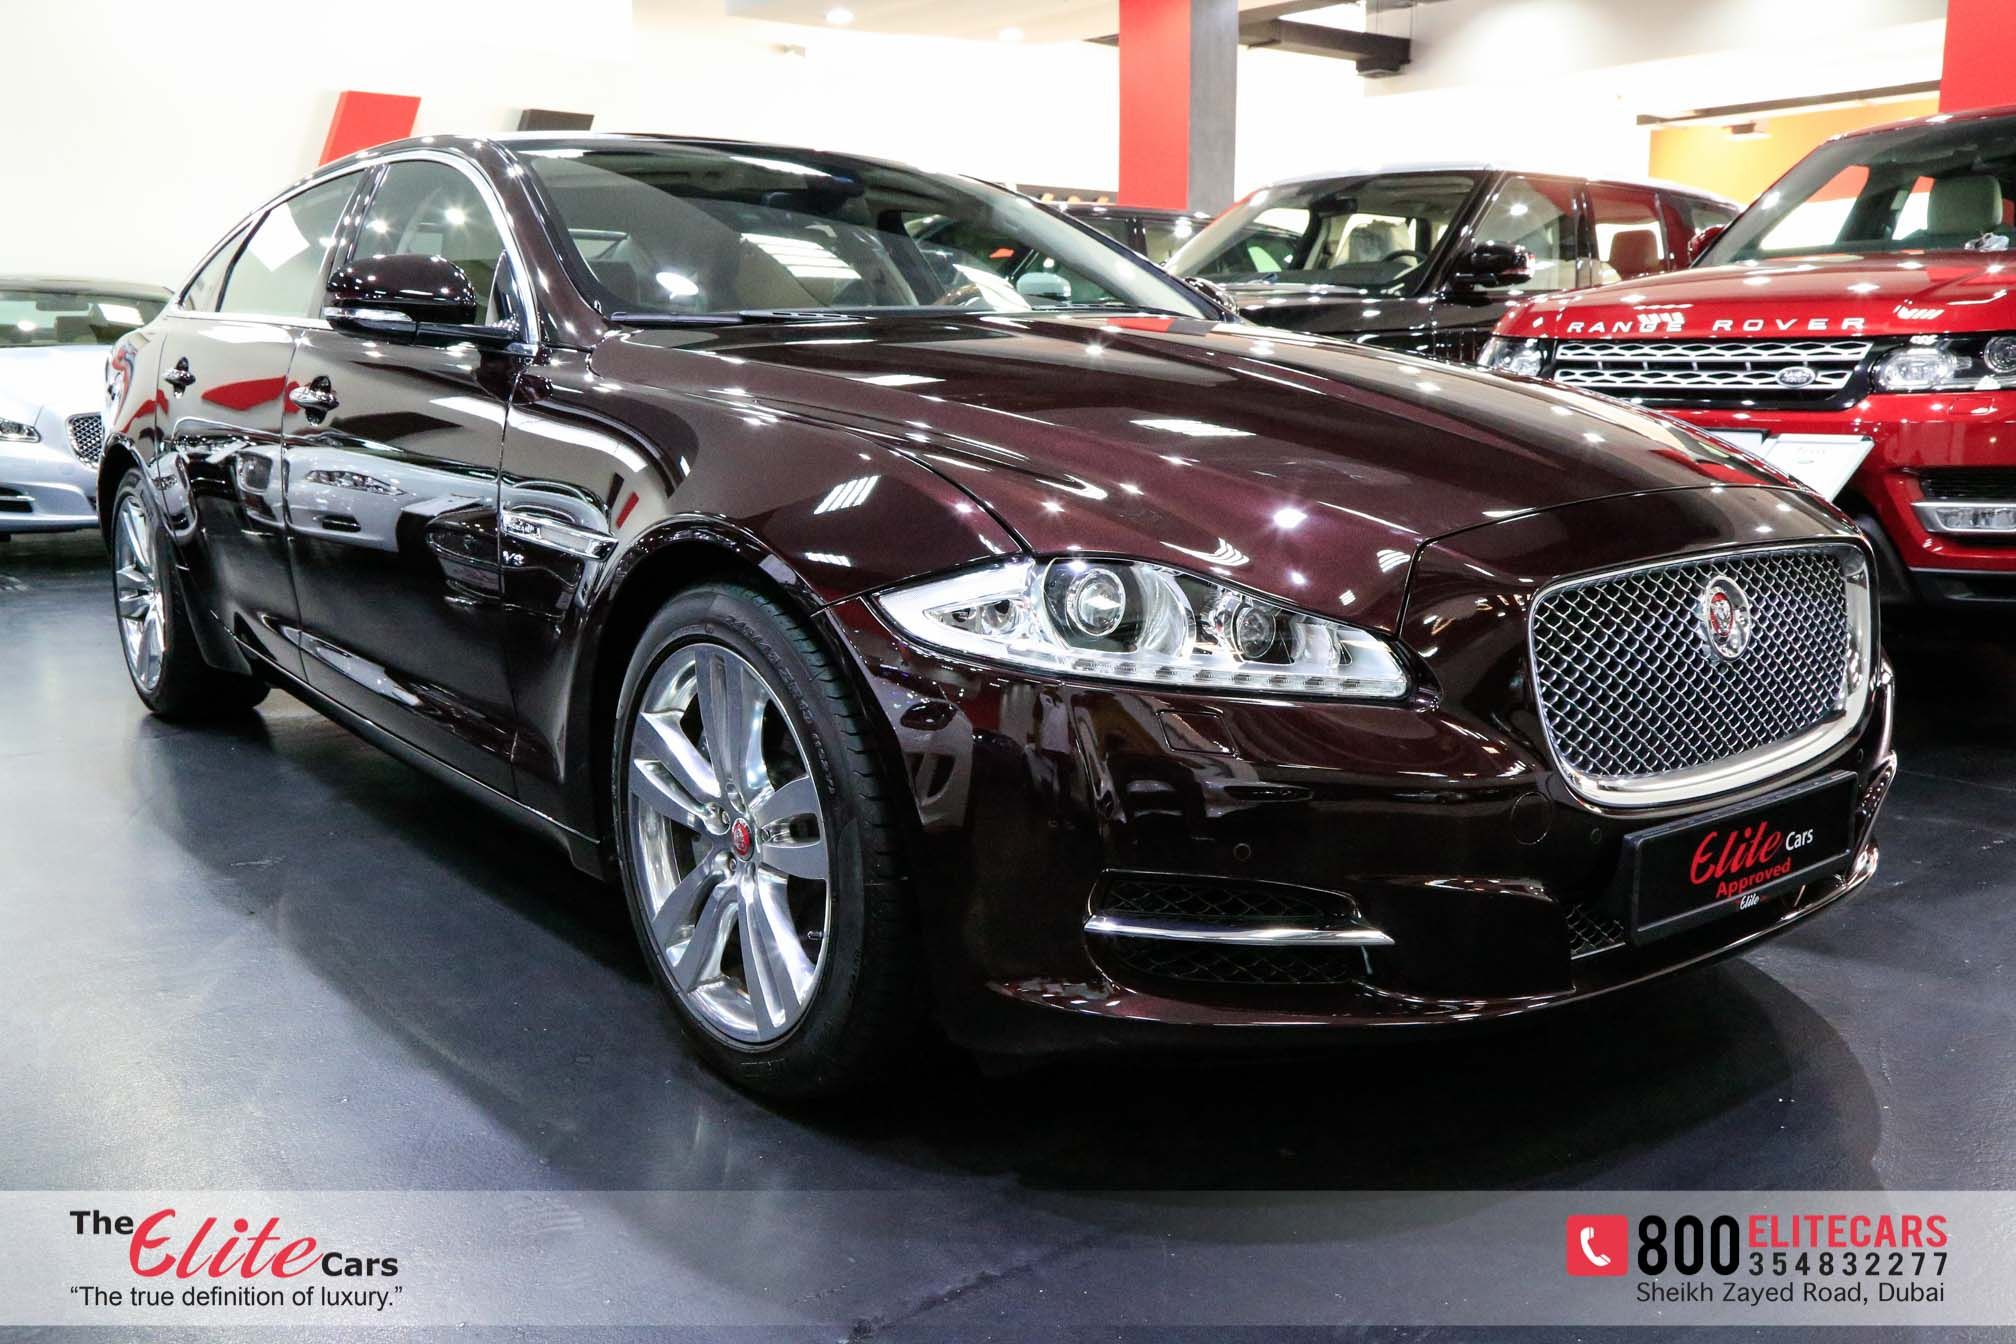 jaguar xjl premium luxury v8 only 700km under warranty gcc the elite cars for pre owned and used cars in dubai the leading jaguar xjl jaguar car dealership jaguar xjl premium luxury v8 only 700km